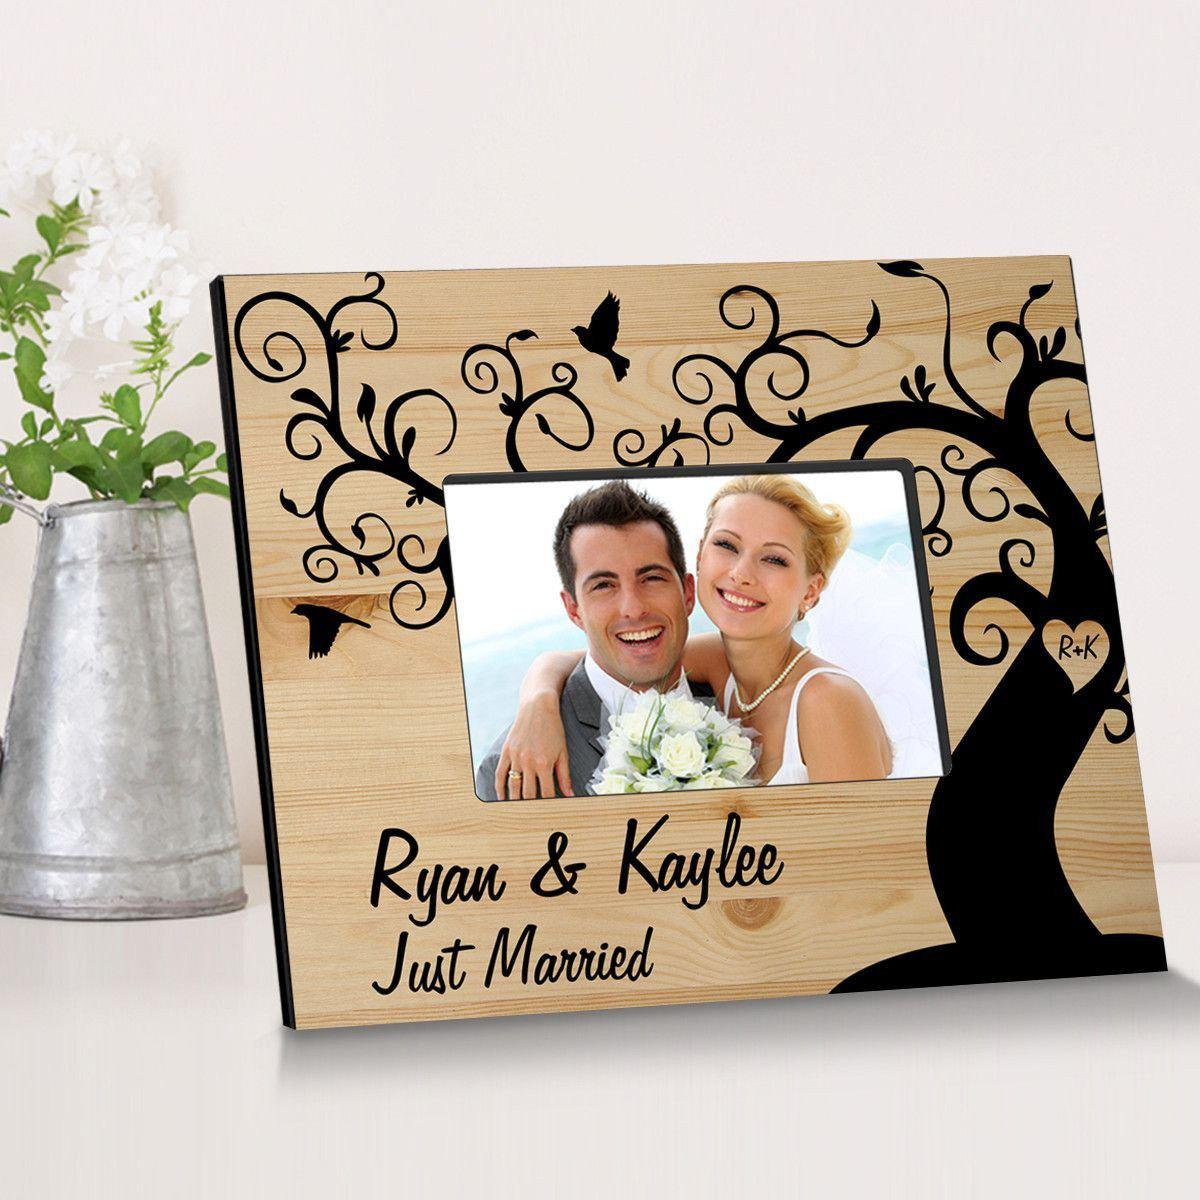 Personalized Winding Down Together Wooden Picture Frame